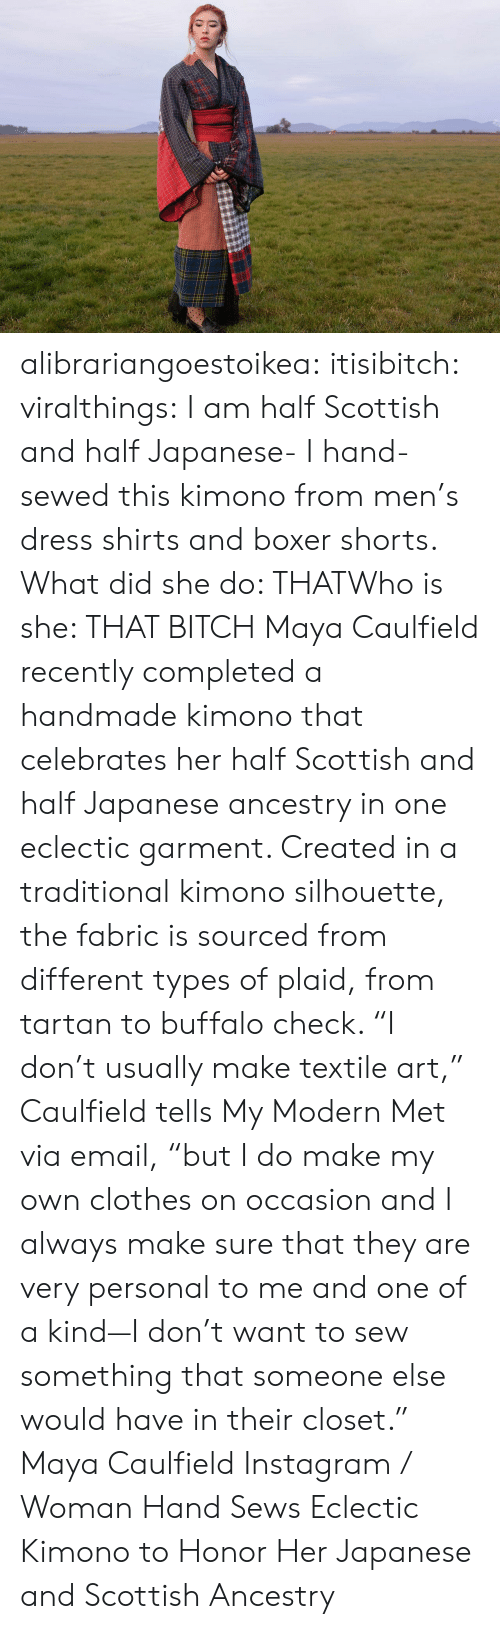 """kimono: alibrariangoestoikea:  itisibitch:  viralthings:  I am half Scottish and half Japanese- I hand-sewed this kimono from men's dress shirts and boxer shorts.  What did she do: THATWho is she: THAT BITCH    Maya Caulfield recently completed a handmade kimono that celebrates her half Scottish and half Japanese ancestry in one eclectic garment. Created in a traditional kimono silhouette, the fabric is sourced from different types of plaid, from tartan to buffalo check. """"I don't usually make textile art,"""" Caulfield tells My Modern Met via email, """"but I do make my own clothes on occasion and I always make sure that they are very personal to me and one of a kind—I don't want to sew something that someone else would have in their closet.""""  Maya Caulfield Instagram/  Woman Hand Sews Eclectic Kimono to Honor Her Japanese and Scottish Ancestry"""